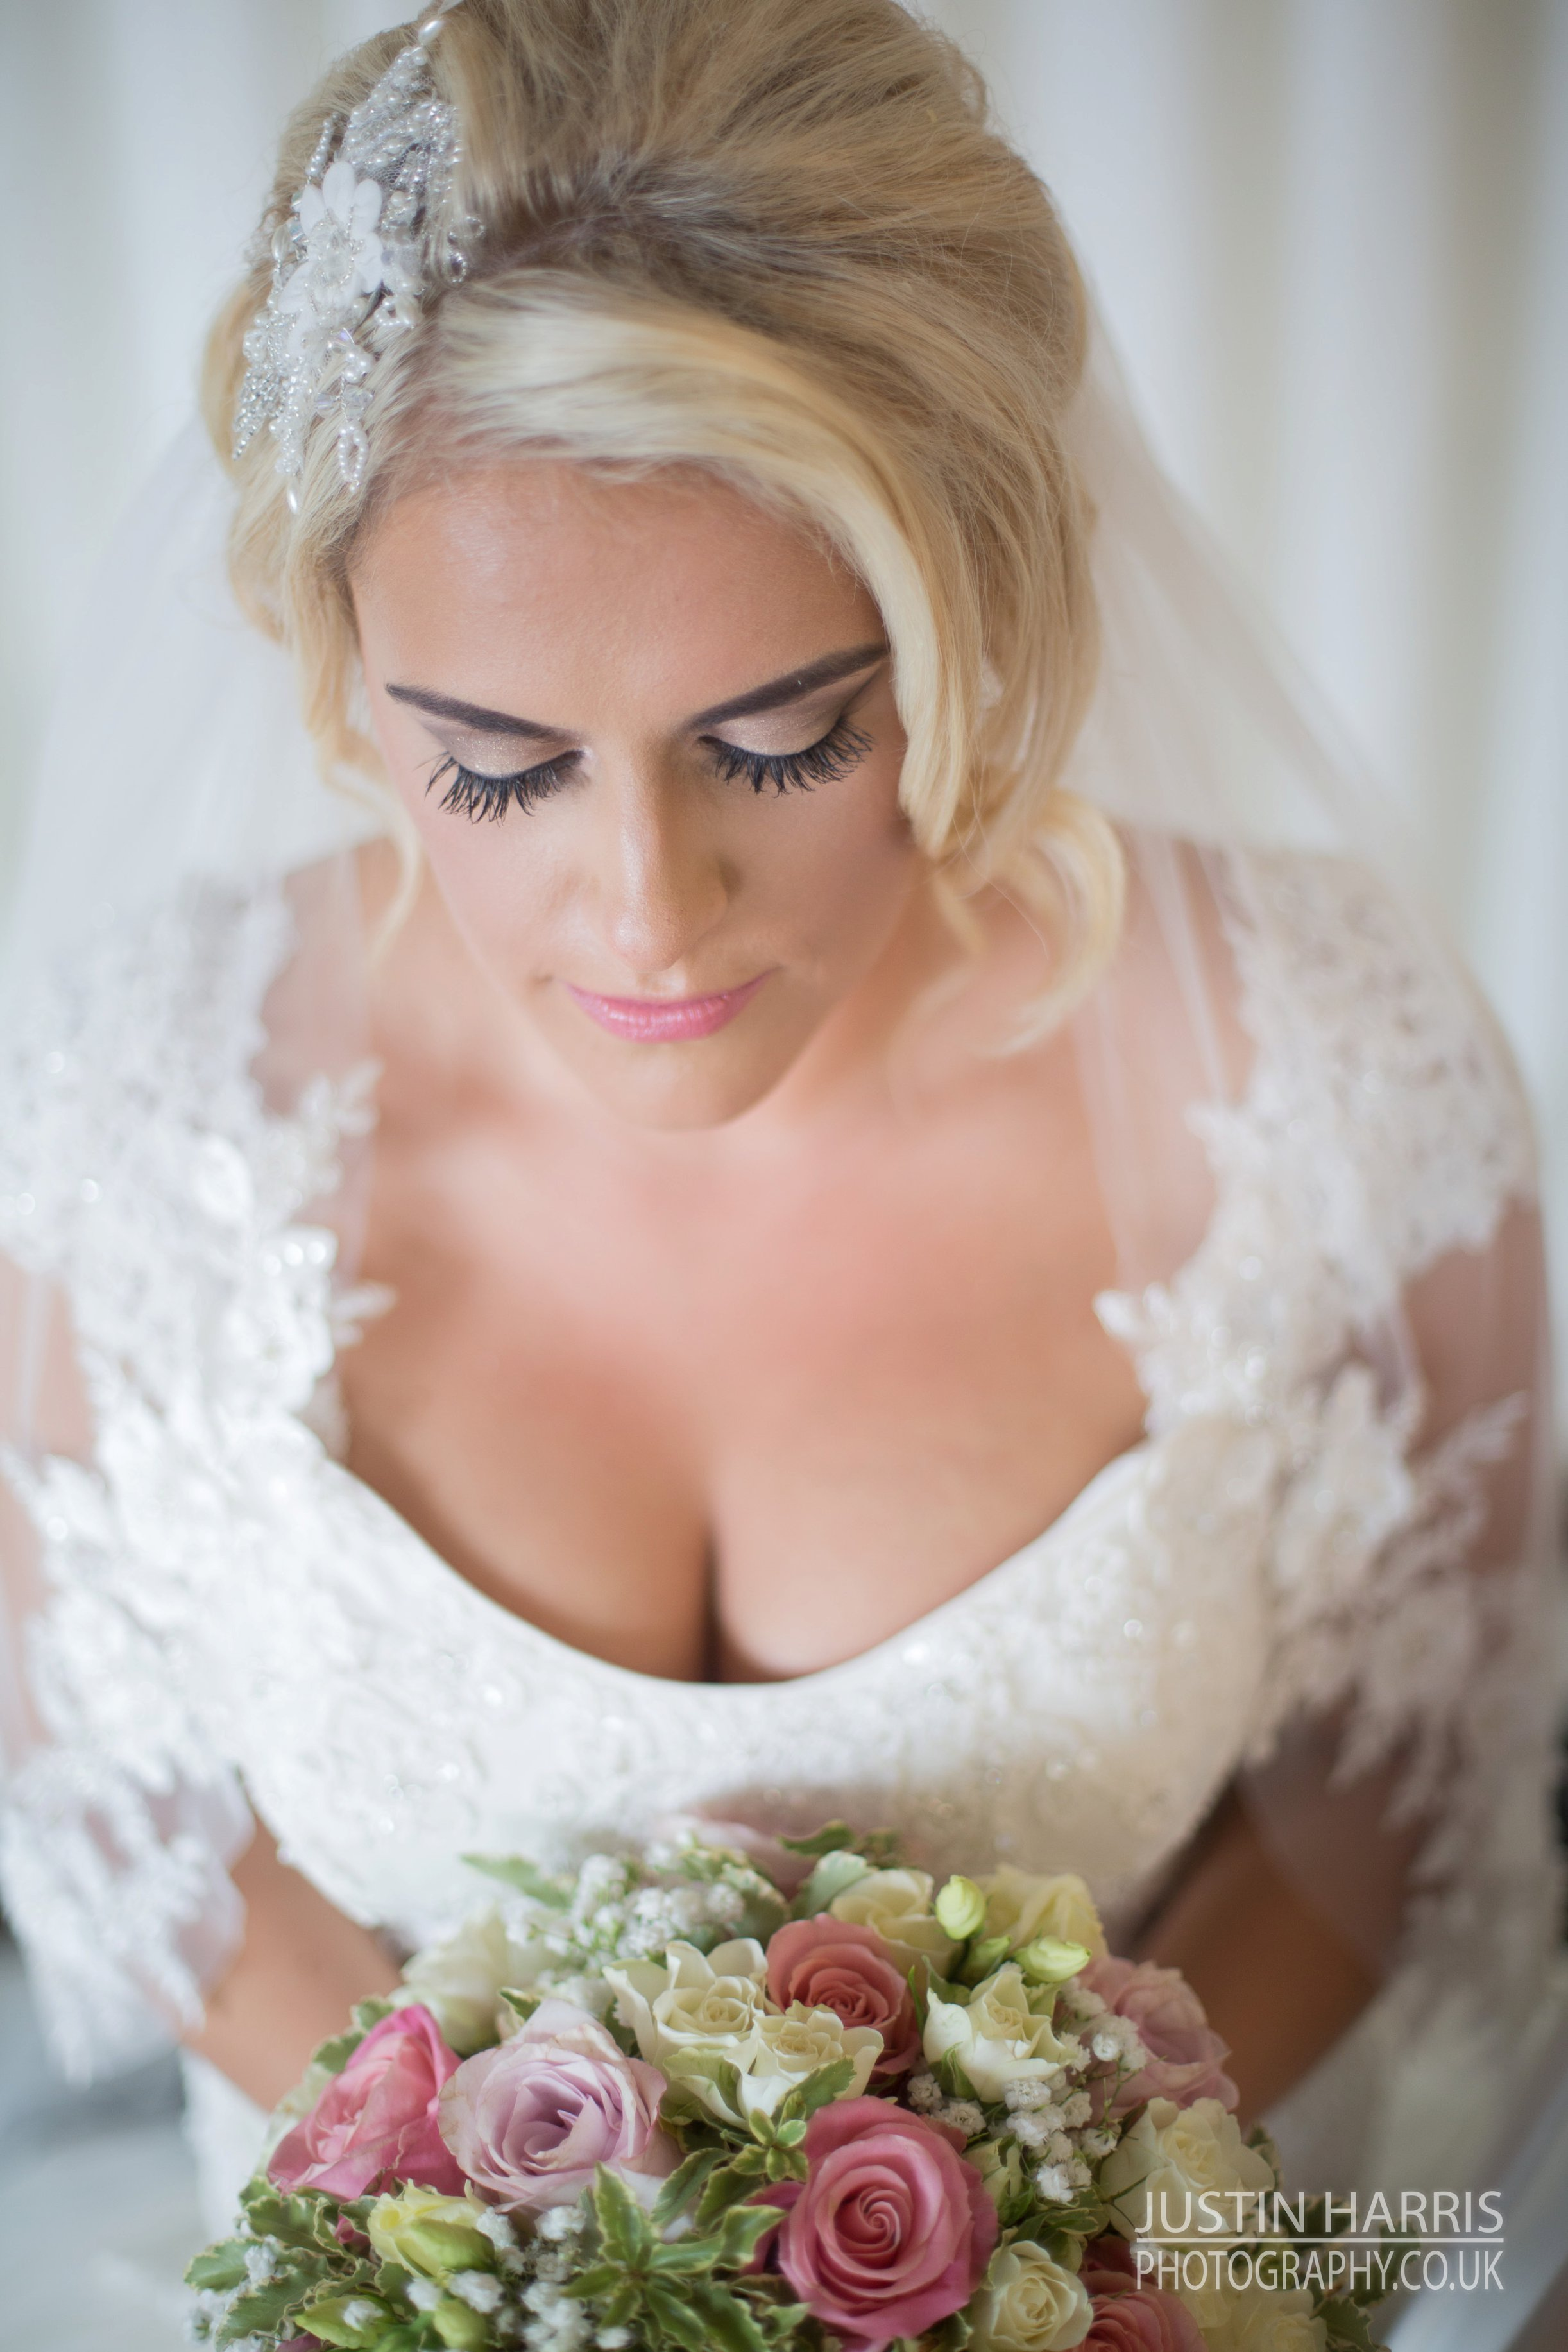 wedding photography oxwich swansea - justin harris photography